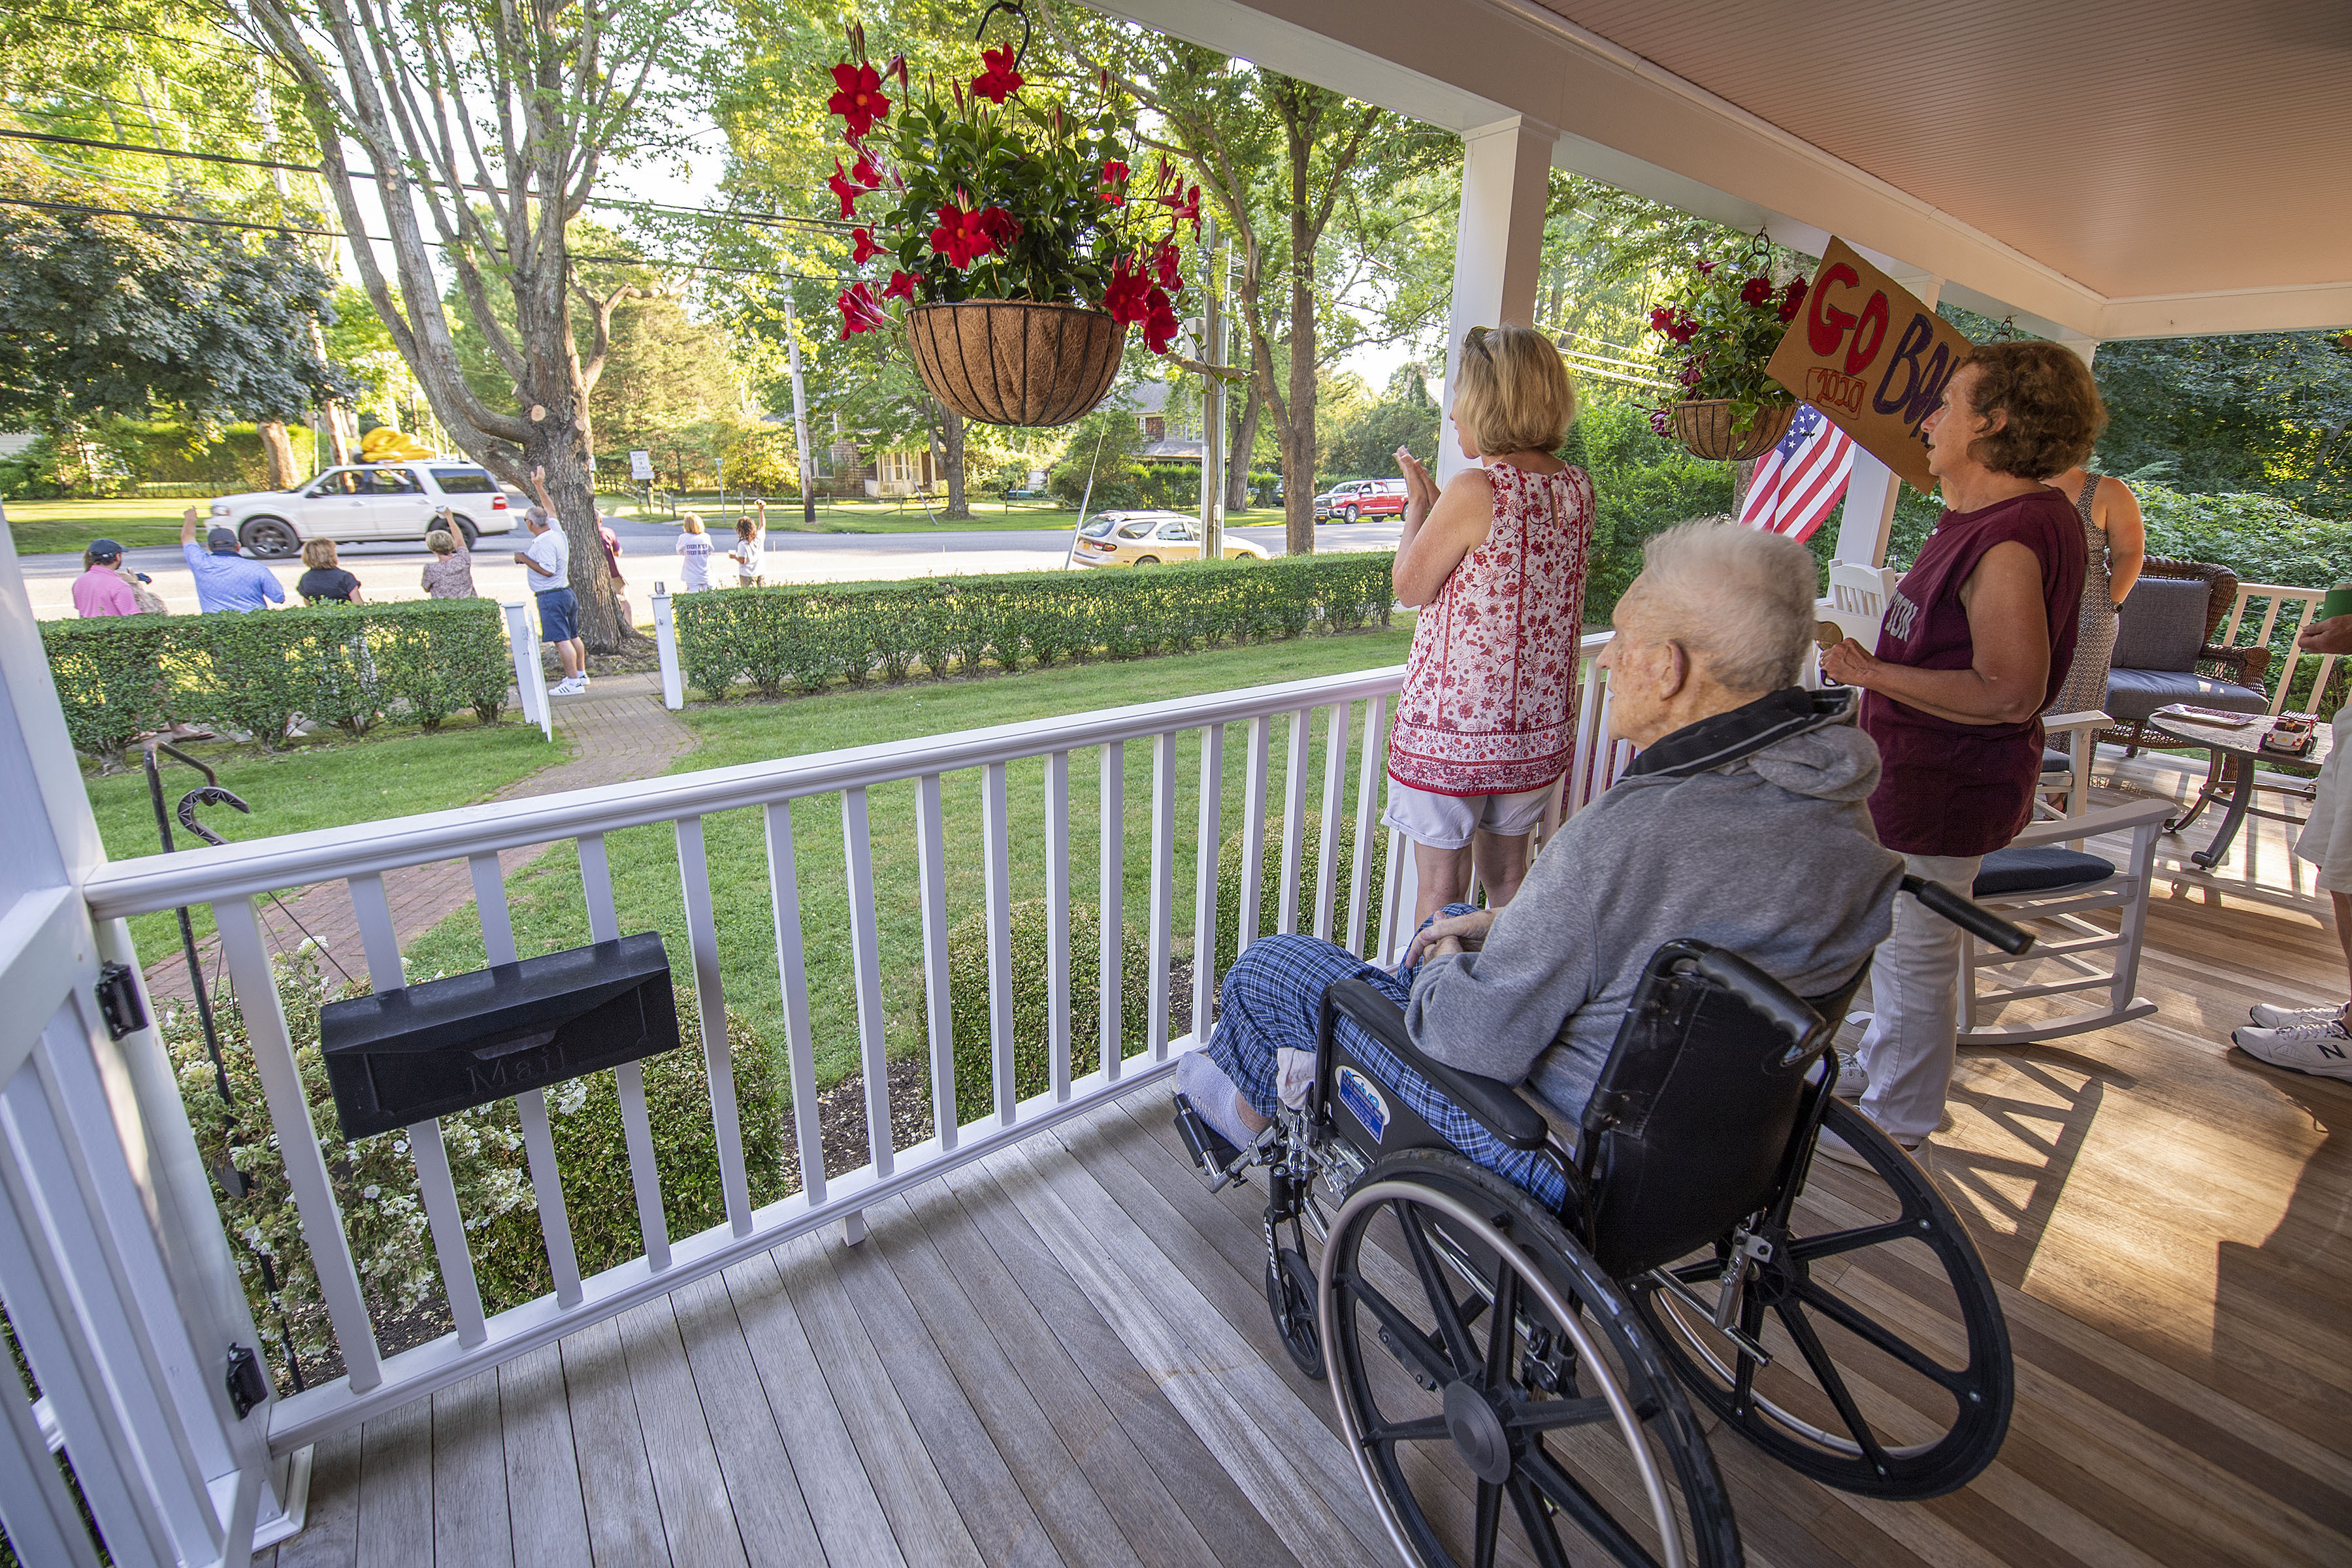 Eighty- three-year-old John McGuirk, Sr. watches the parade of passing East Hampton High School graduates from his front porch on Newtown Lane following the 2020 graduation ceremony at the East Hampton High School on Friday.